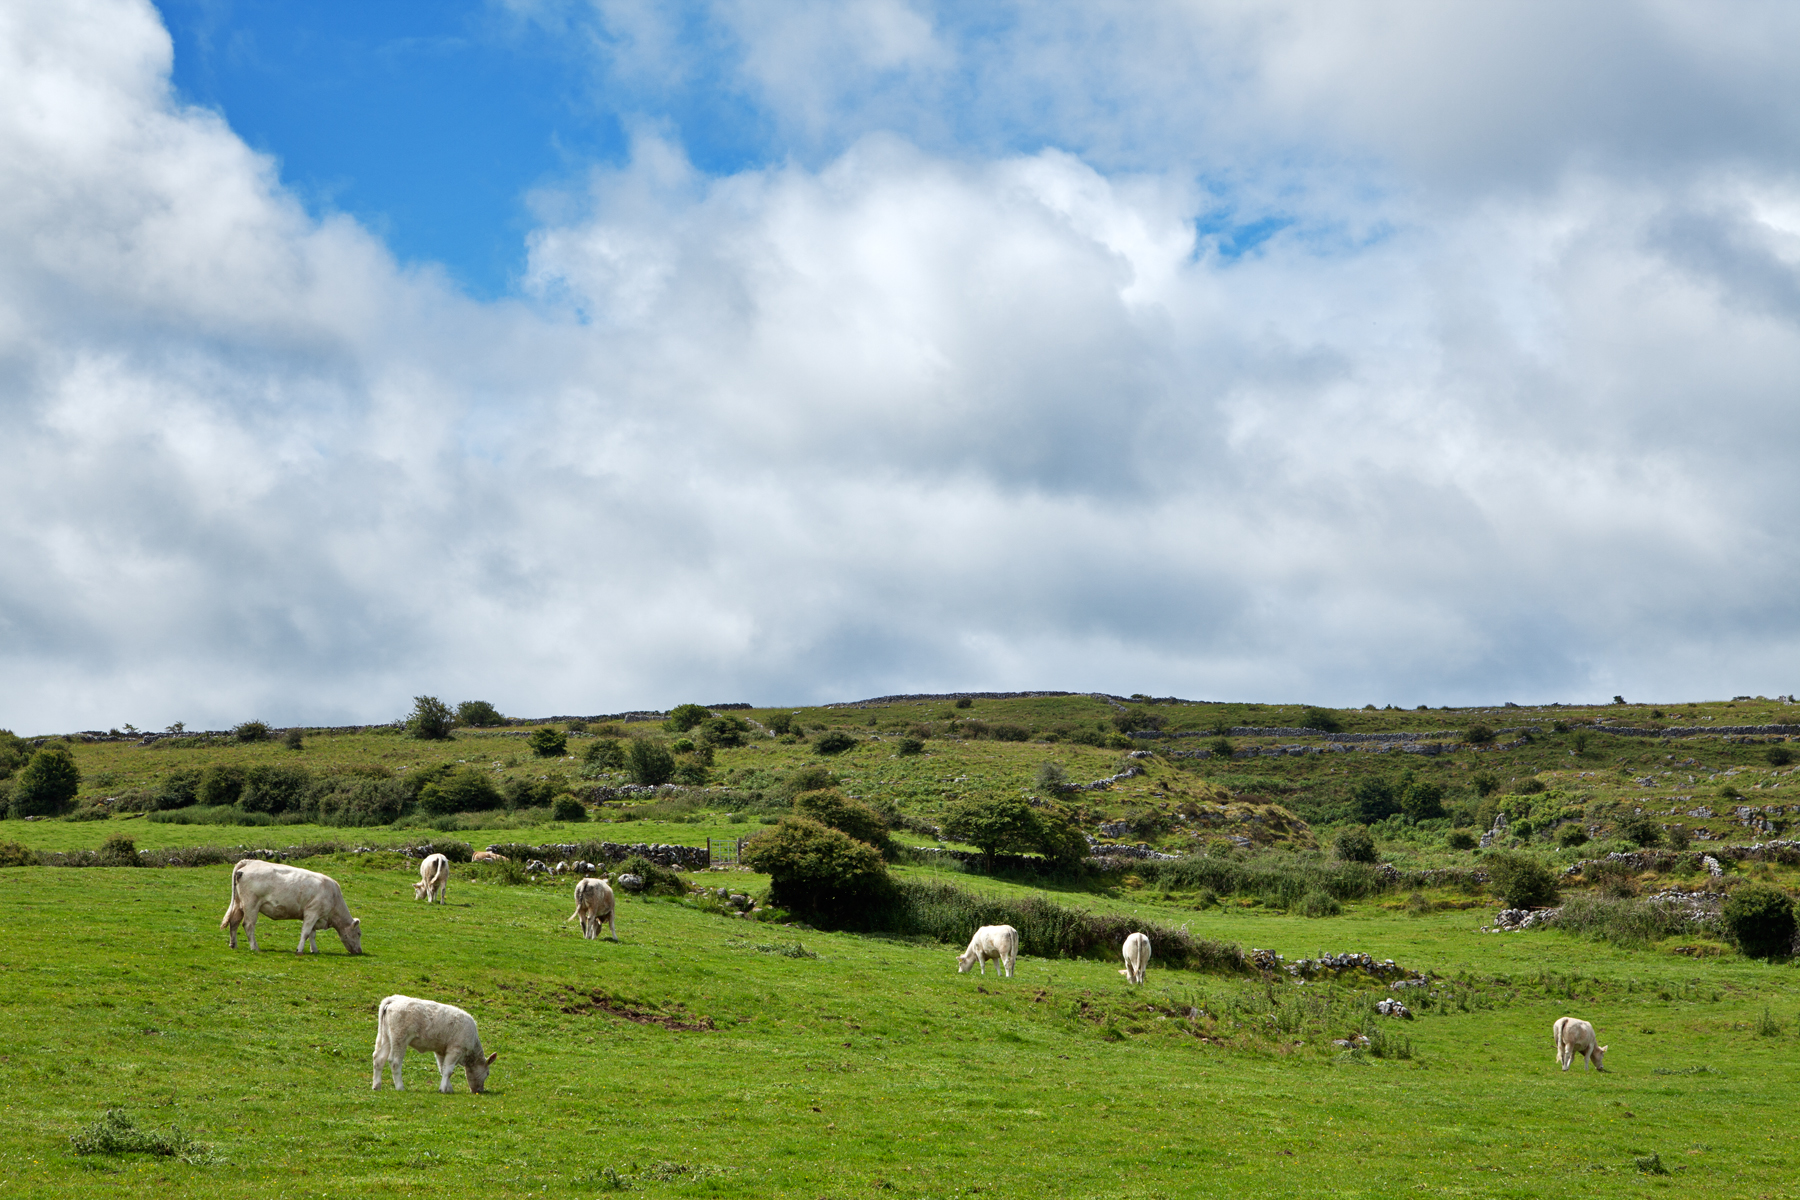 Poulnabrone Pasture, Agricultural, Peaceful, Resource, Republic, HQ Photo